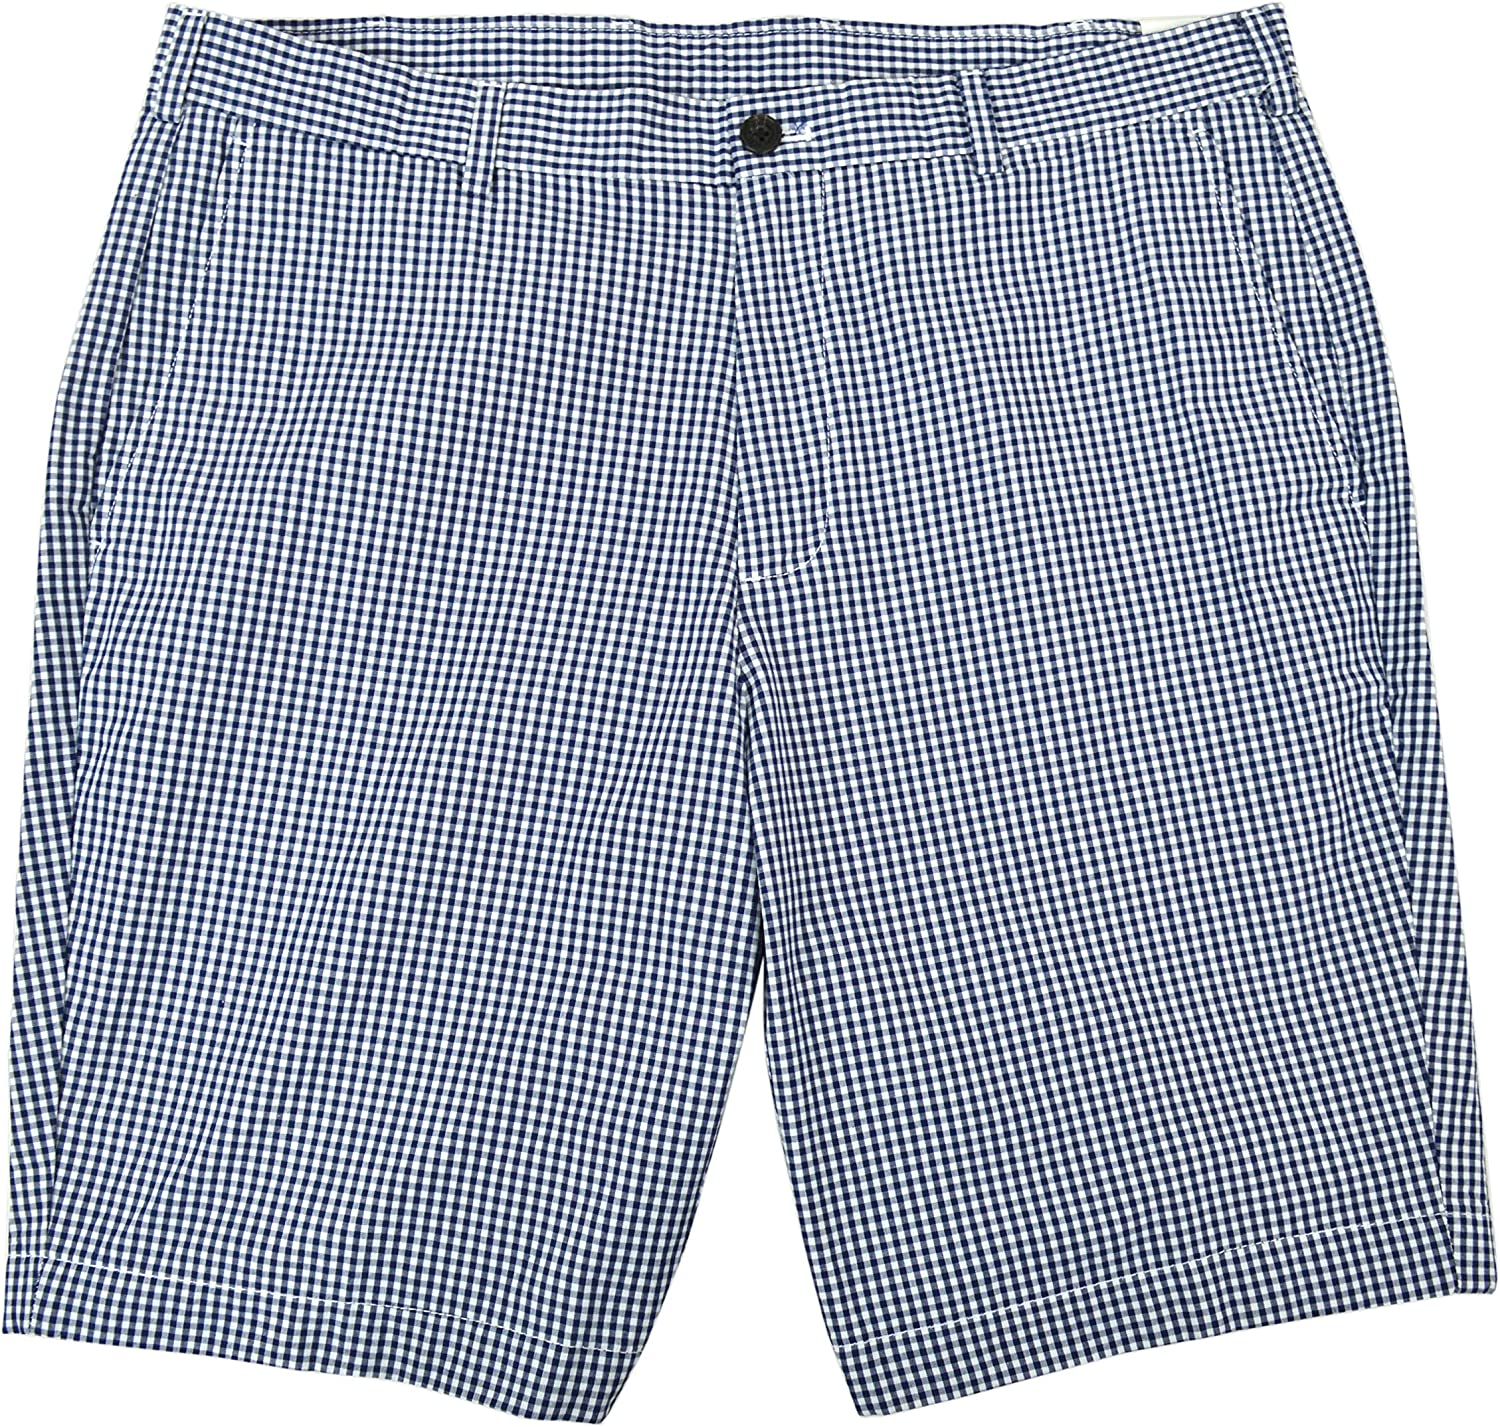 Brooks Brothers Mens Gingham Plaid Flat Front Casual Shorts Blue and White